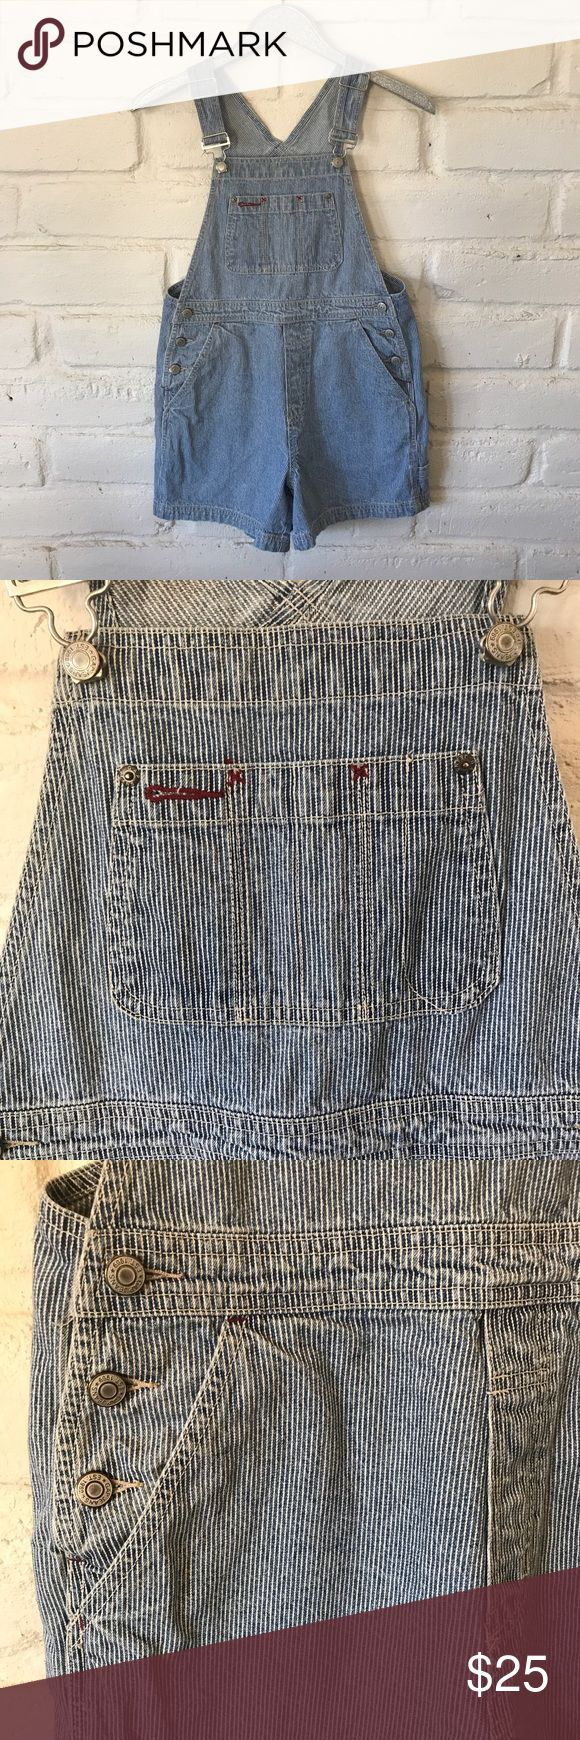 90's Vintage GAP Railroad Tracks Striped Overalls Adorable overalls, straight from the 90's! Excellent preowned condition. Light blue denim with thin white lines. Red stitched accents on the bib and back pockets. Tag says xs but these would comfortable fit up to a women's size 4. Look adorable rolled up once or twice. Adjustable straps make these perfect for long or short torsos, and everything in between! Waist measures 17 inches laid flat. Inseam measures 4 3/4 inches. Silver hardware…